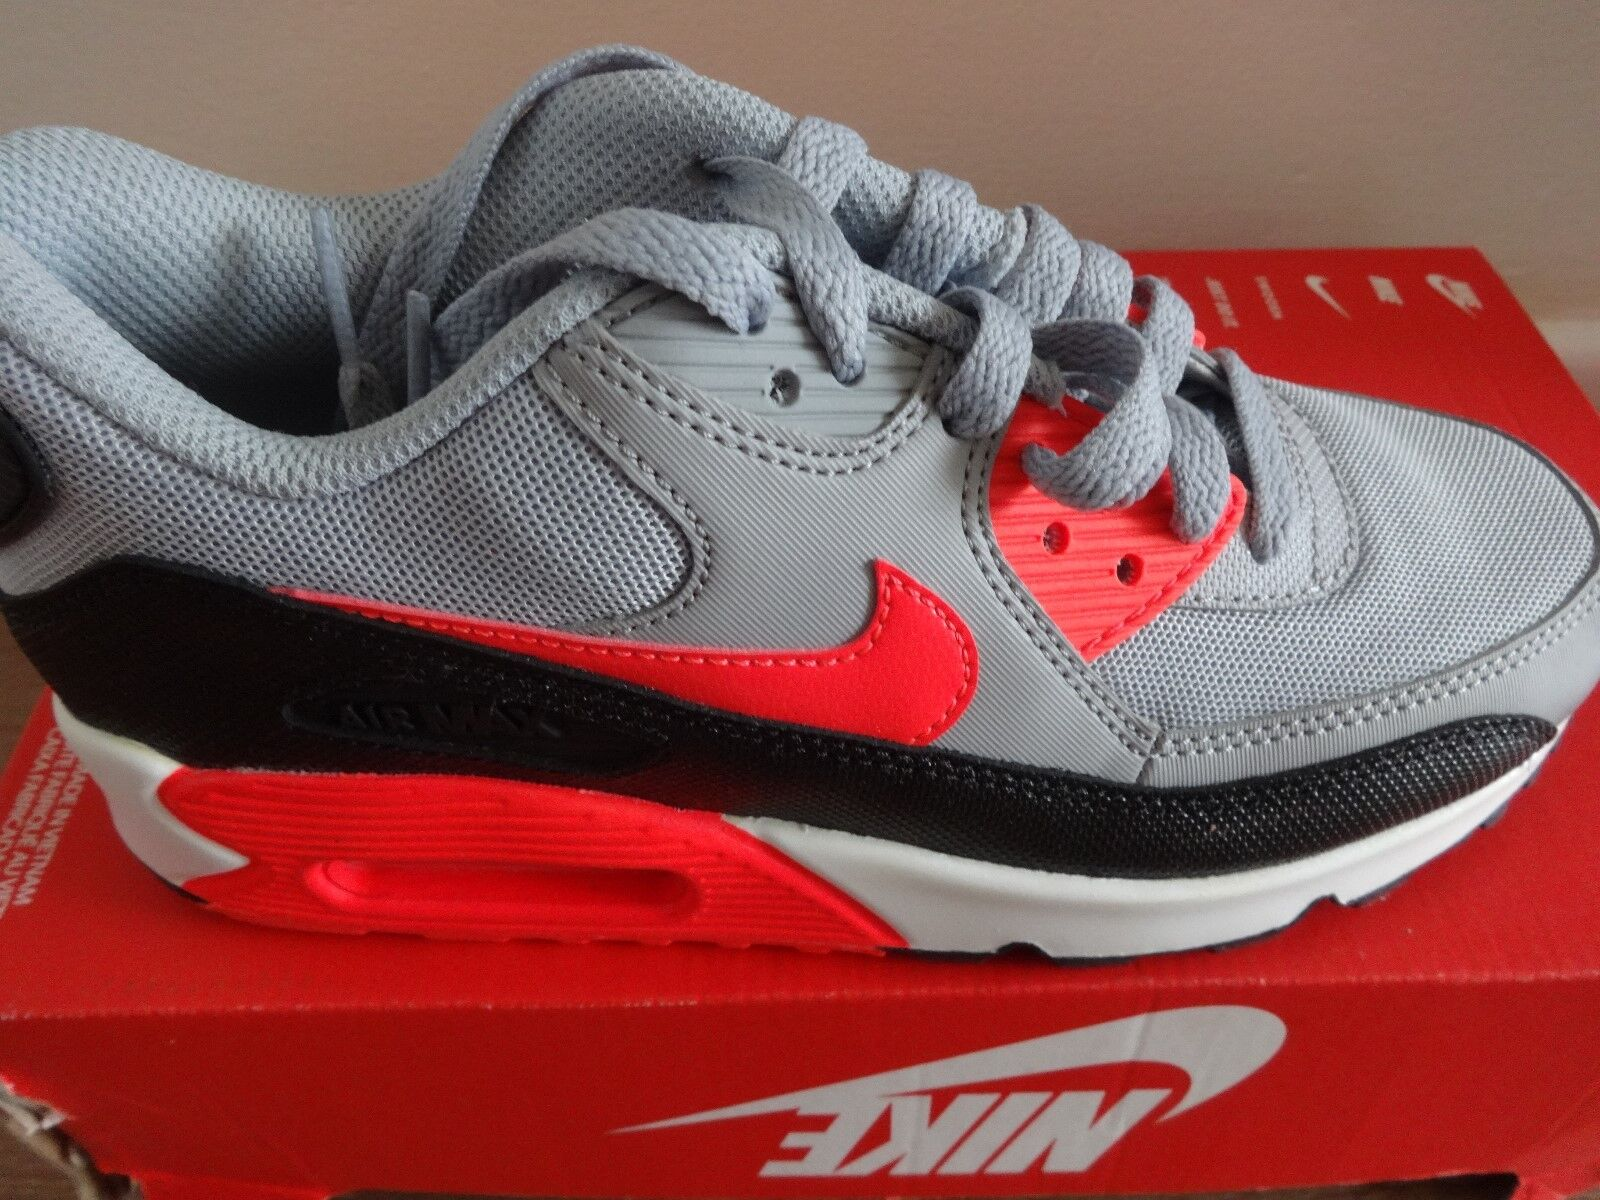 Nike womens Air max 90 essential womens Nike trainers 616730 014 uk 4 eu 37.5 us 6.5 NEW+BOX 3b4d02